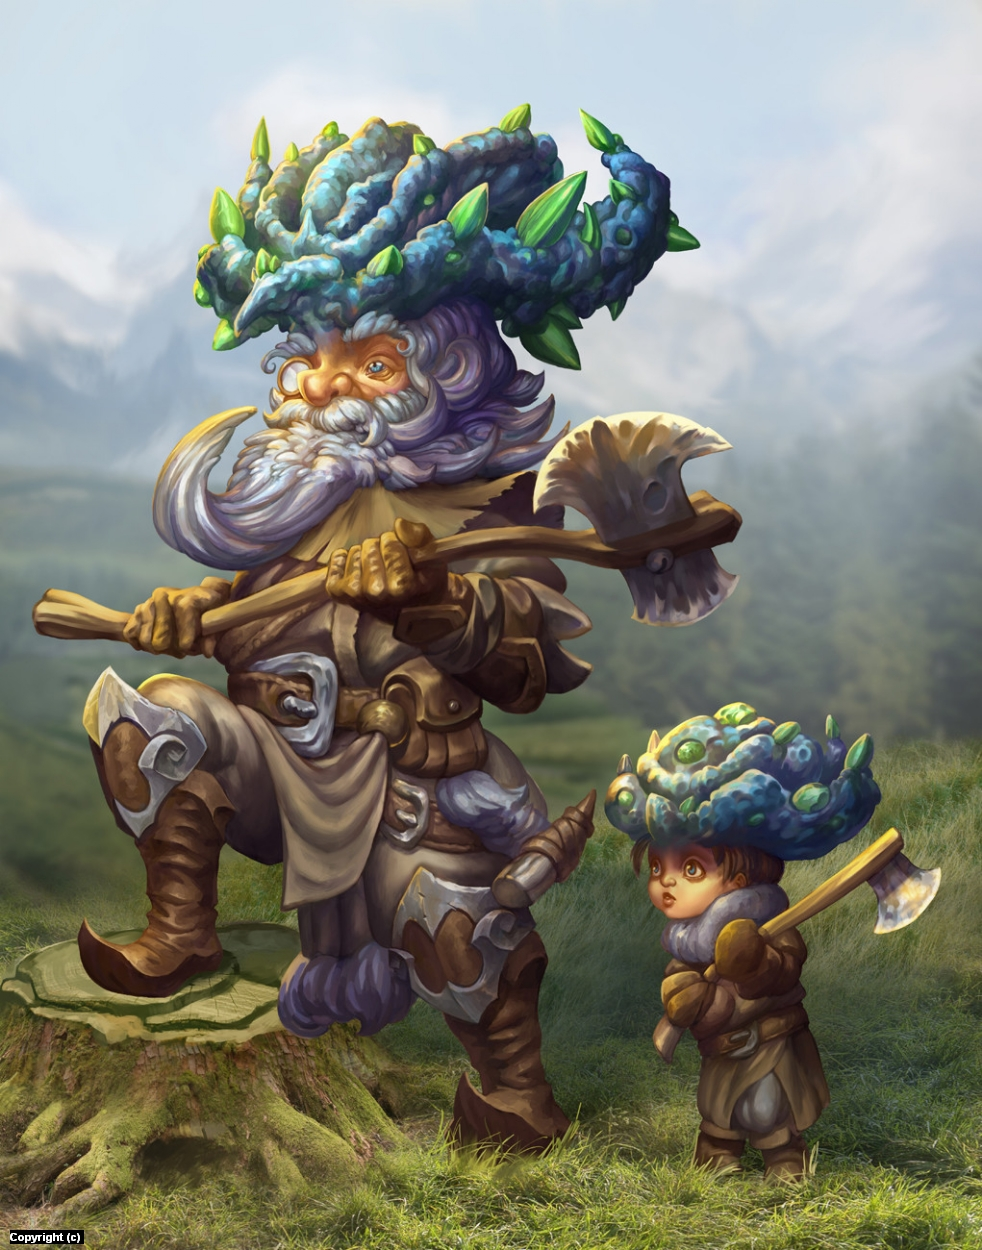 Woodcutters Artwork by Luka Brico